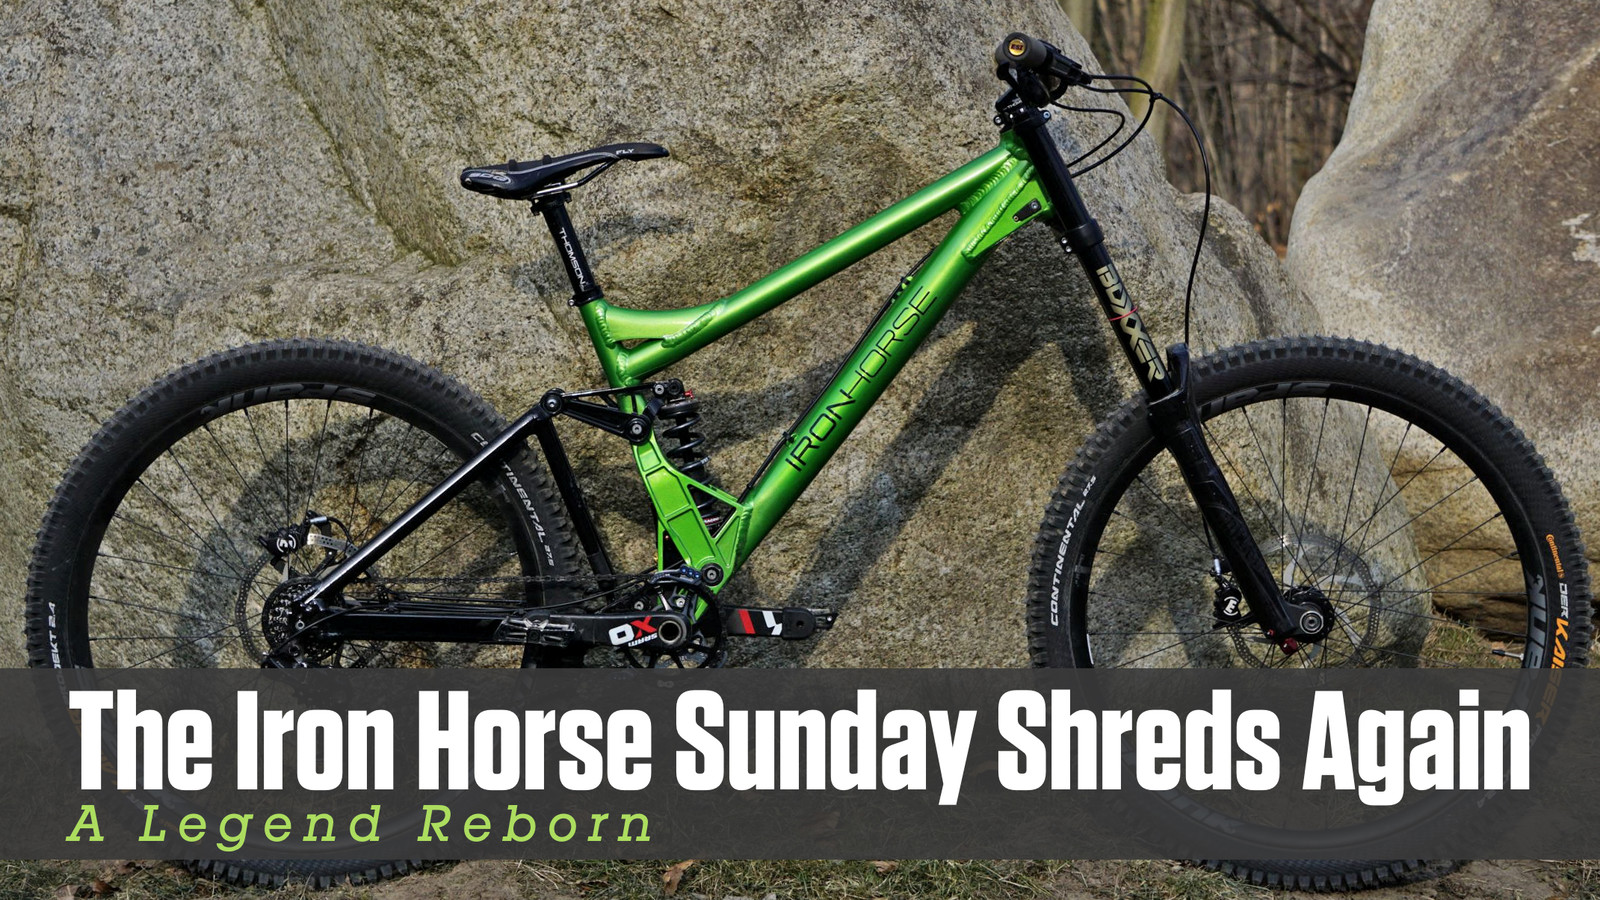 The Iron Horse Sunday Shreds Again | A Legend Reborn